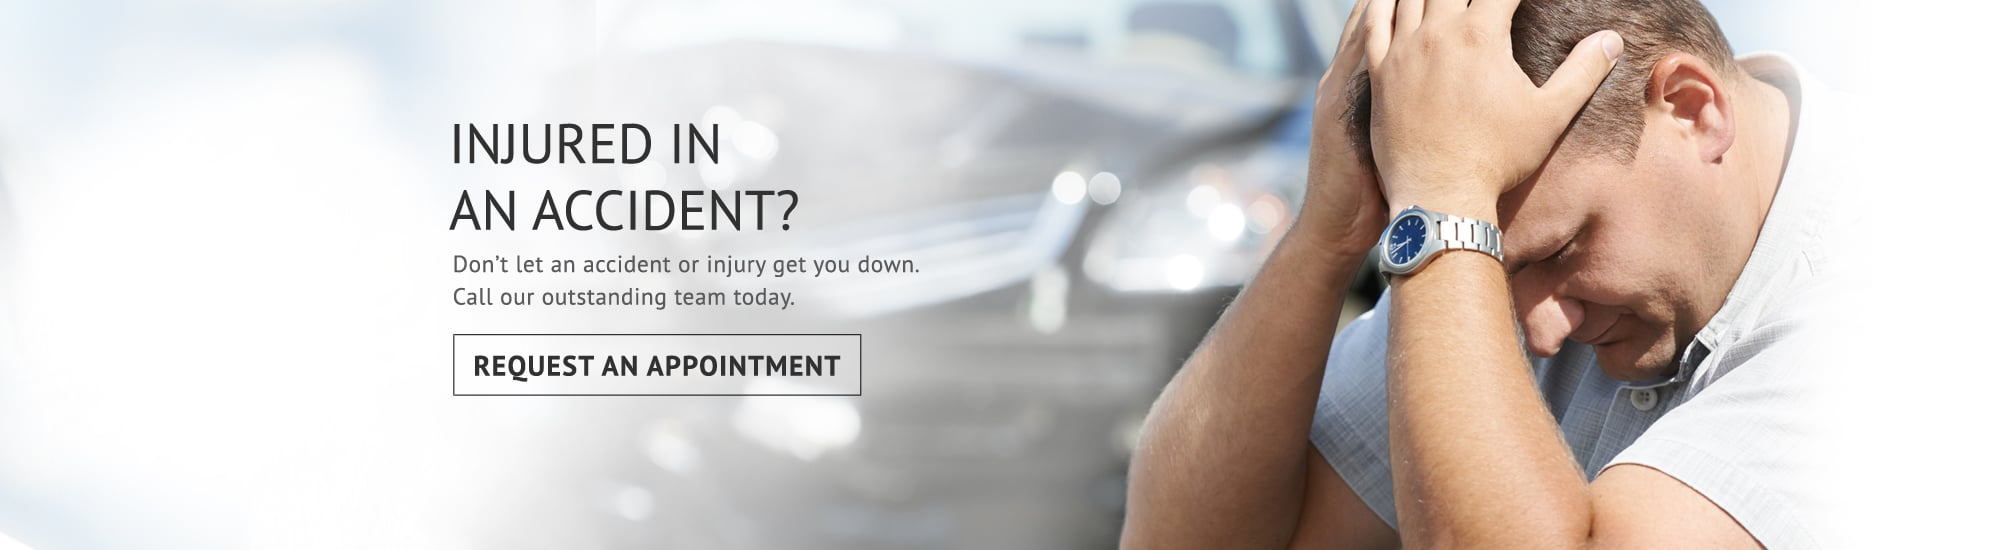 auto injury care at synergy chiropractic in Indianapolis IN